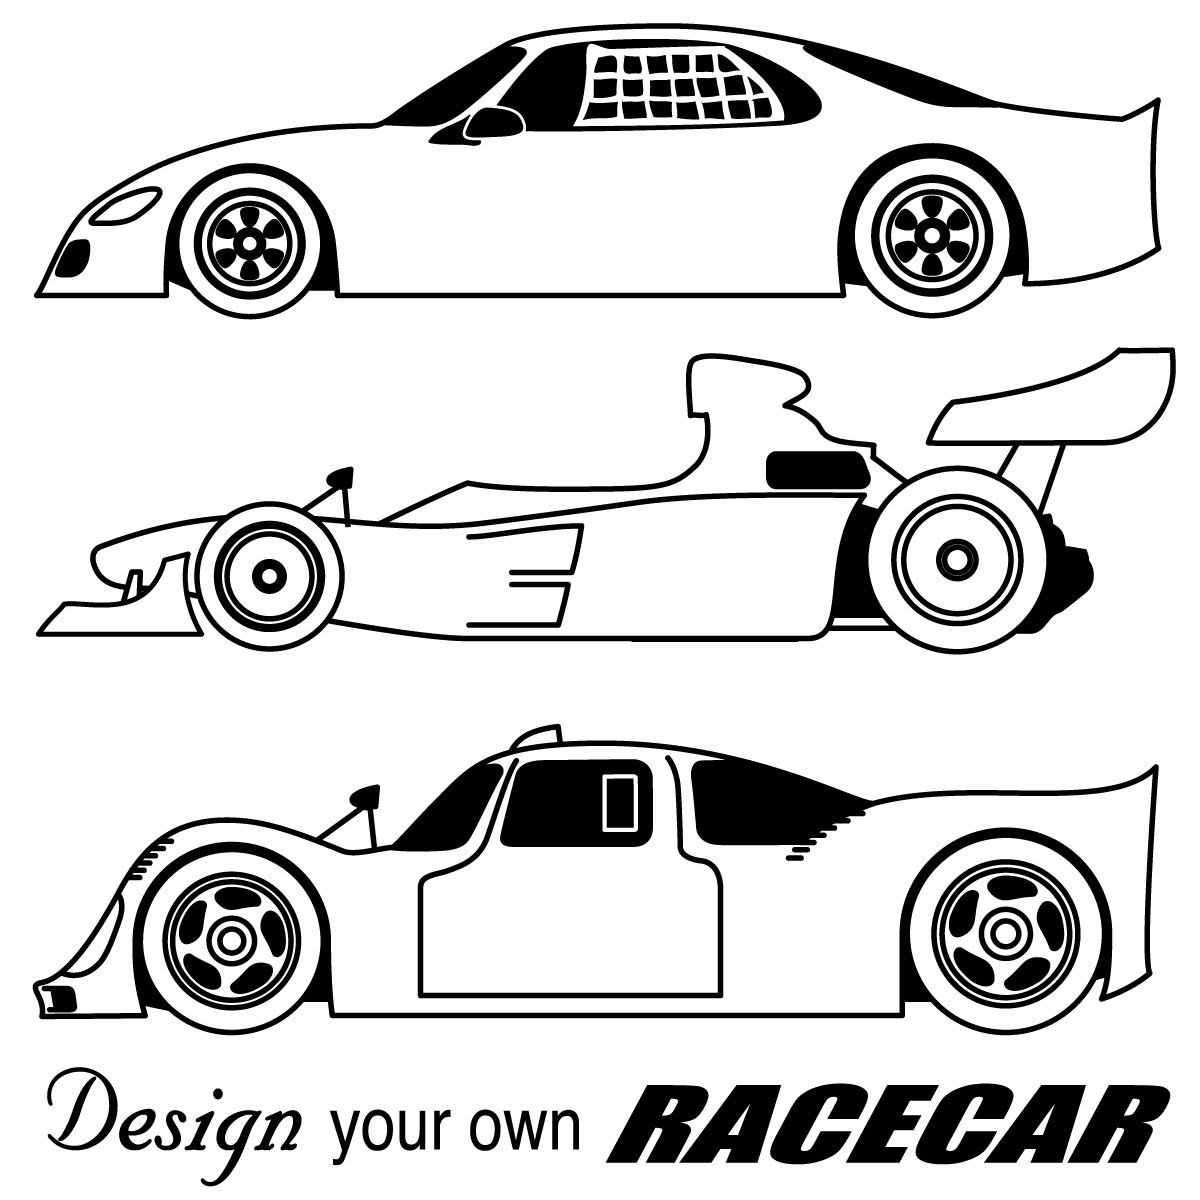 Car Design Coloring Pages : Race cars coloring pages free large images